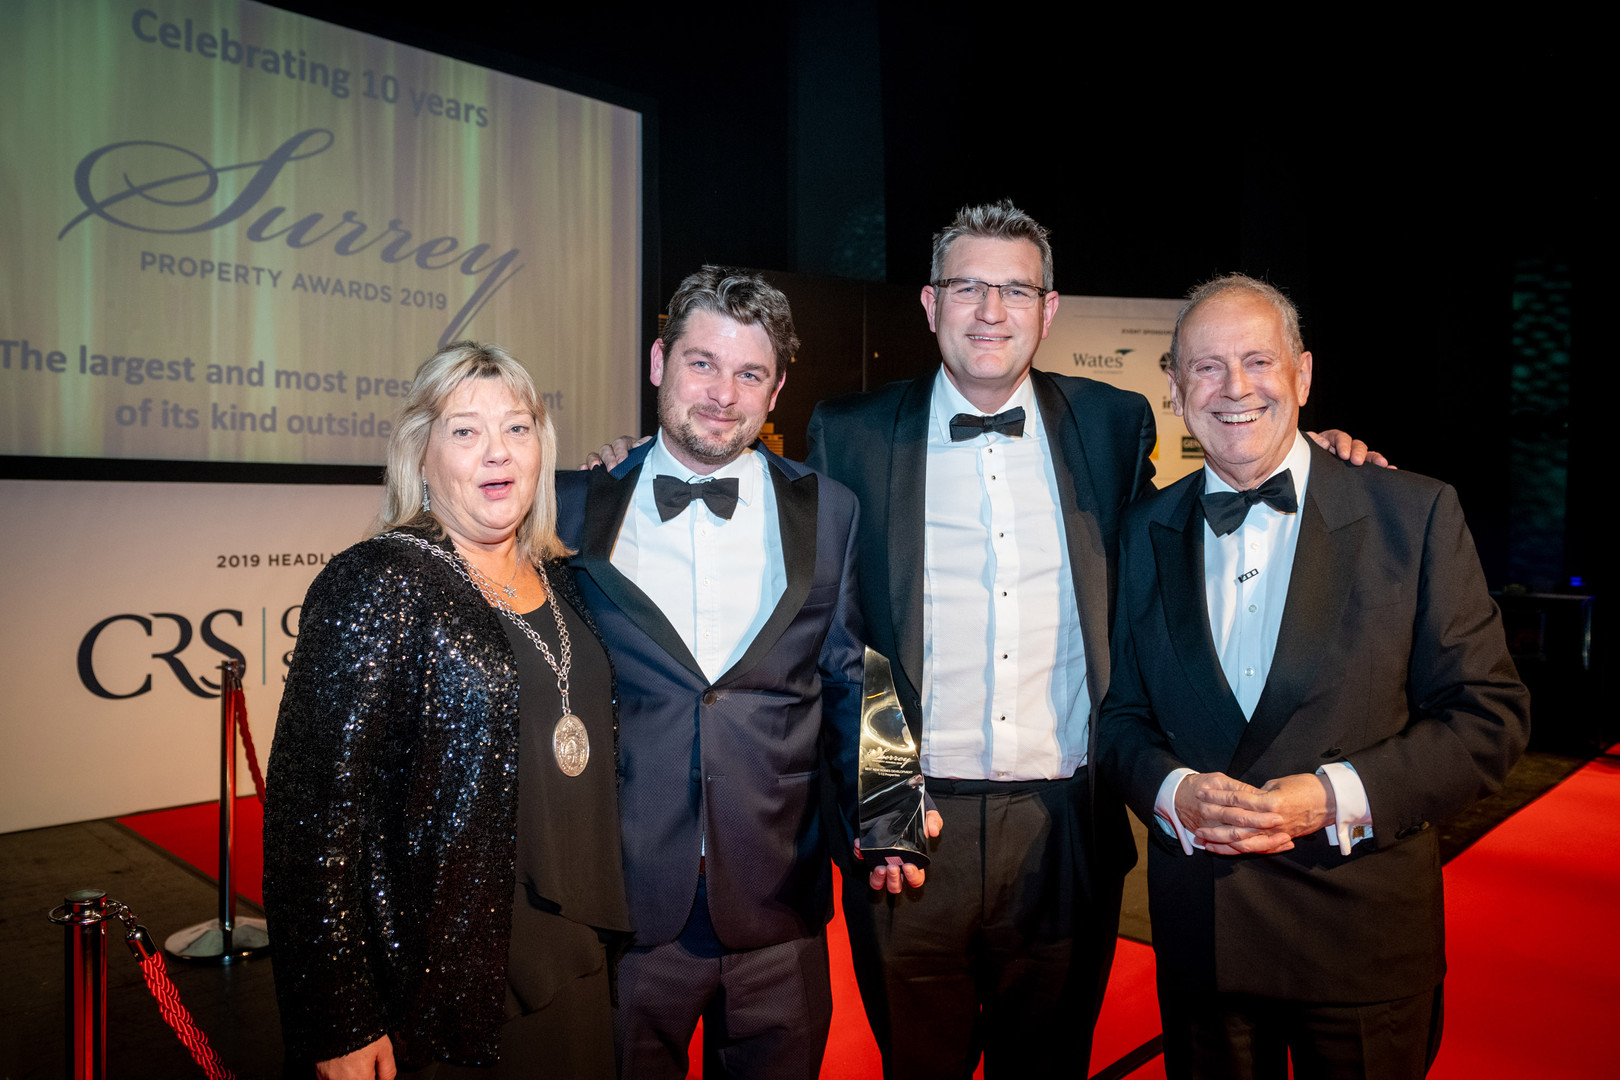 SurreyPropertyAwards_Nov2019_382.jpg